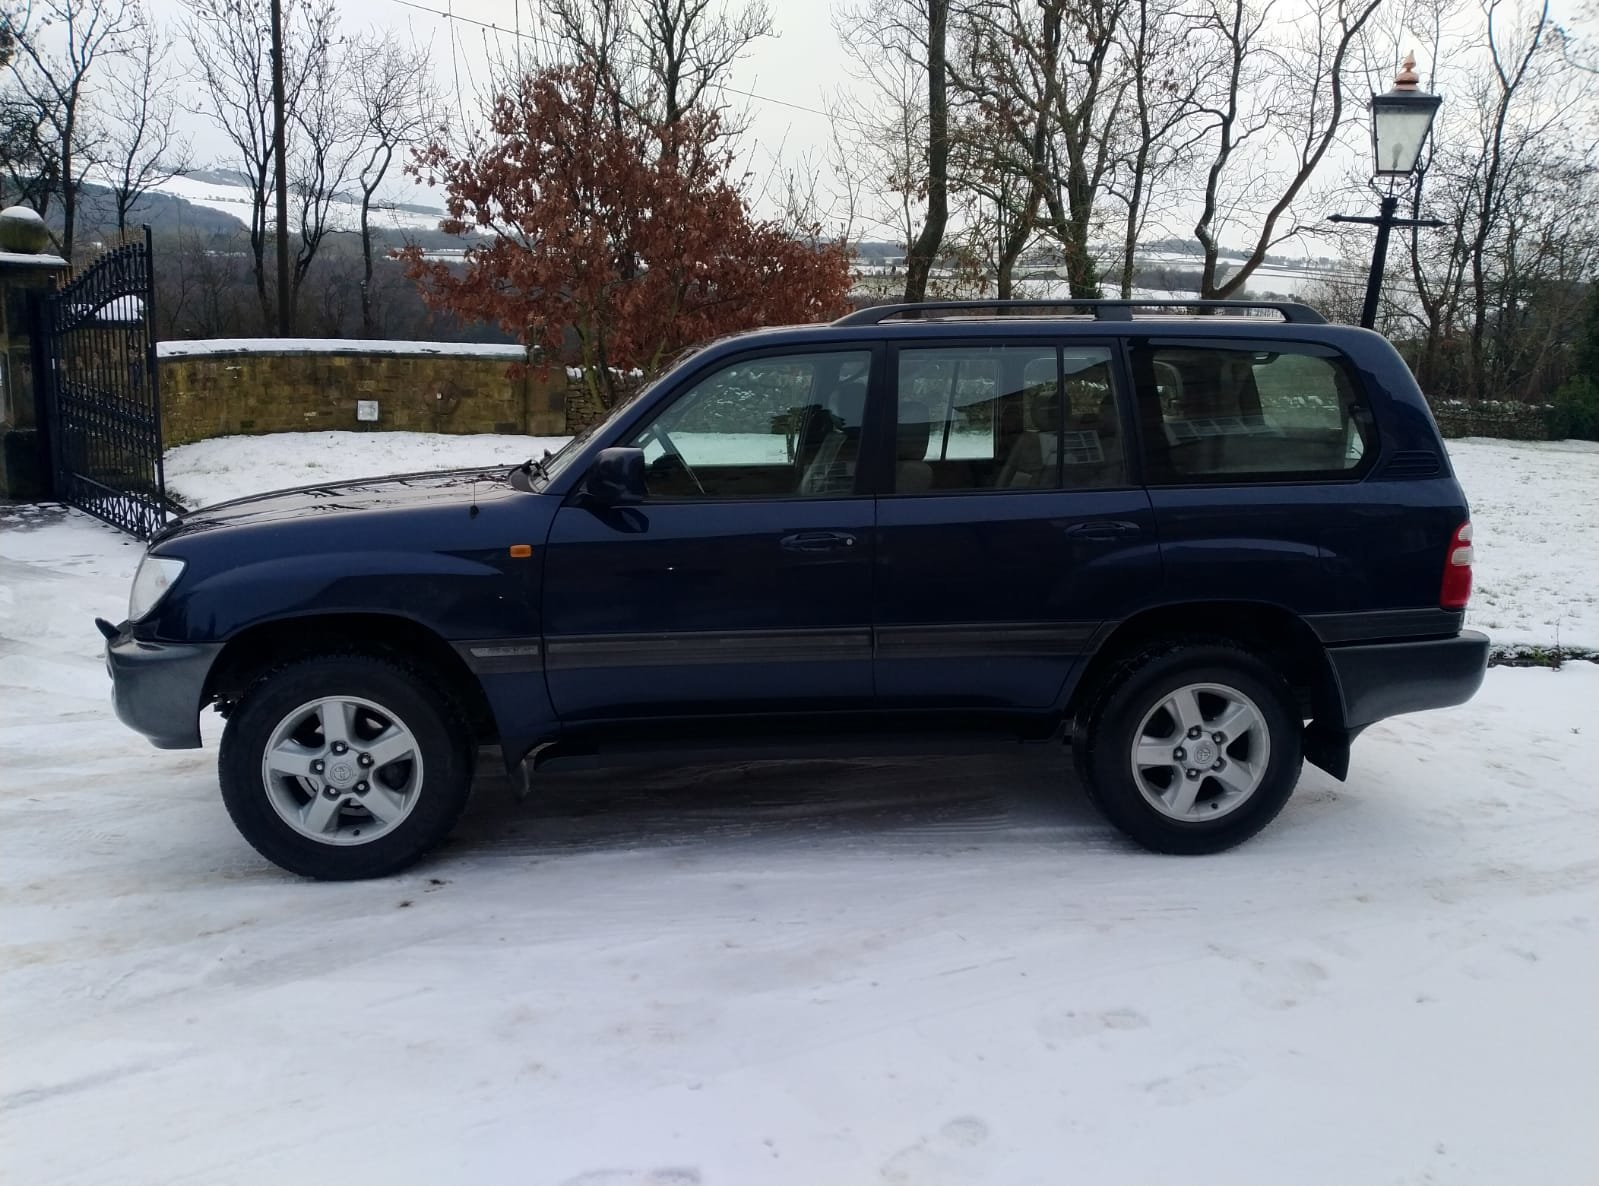 2004 Toyota Land cruiser Amazon TD 4.2 Auto For Sale (picture 4 of 12)